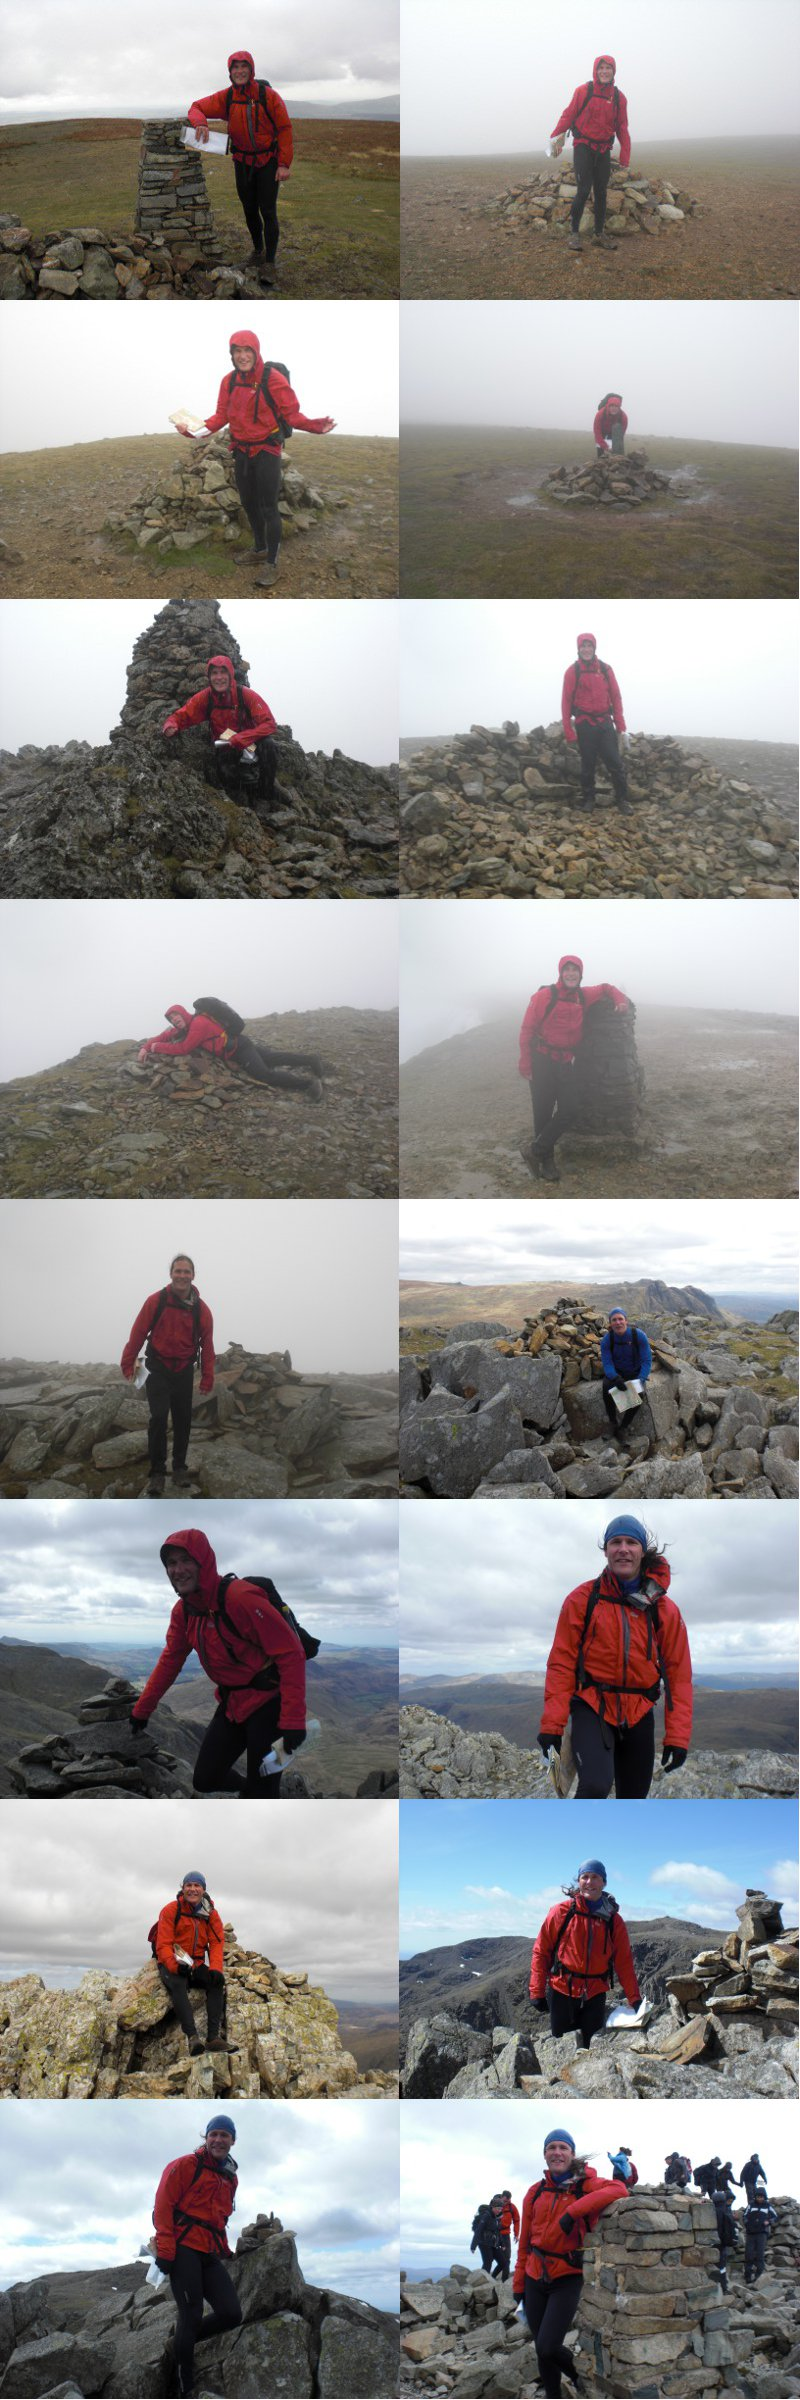 All the peaks we visited (apart from three where the camera failed).